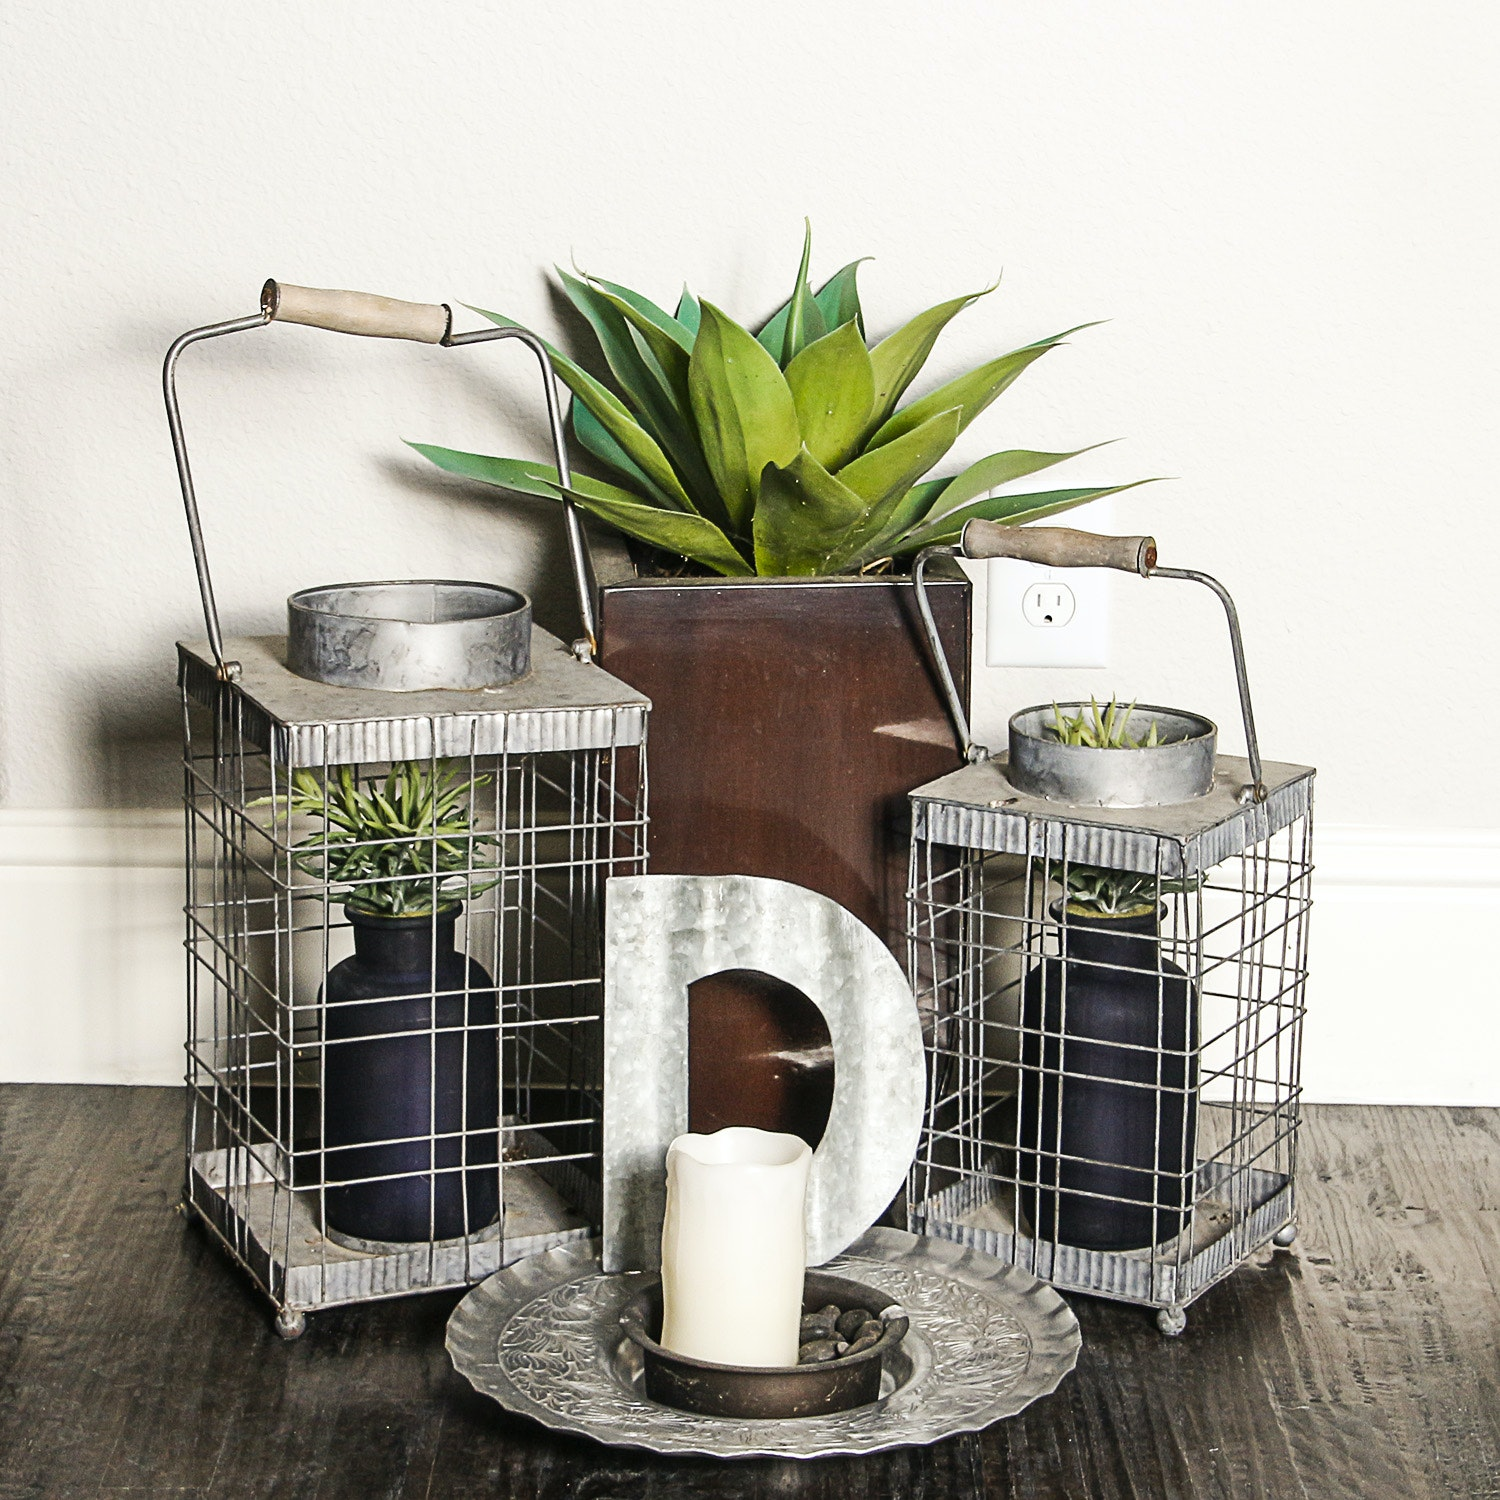 Metal Candle Holders and Plant Decor